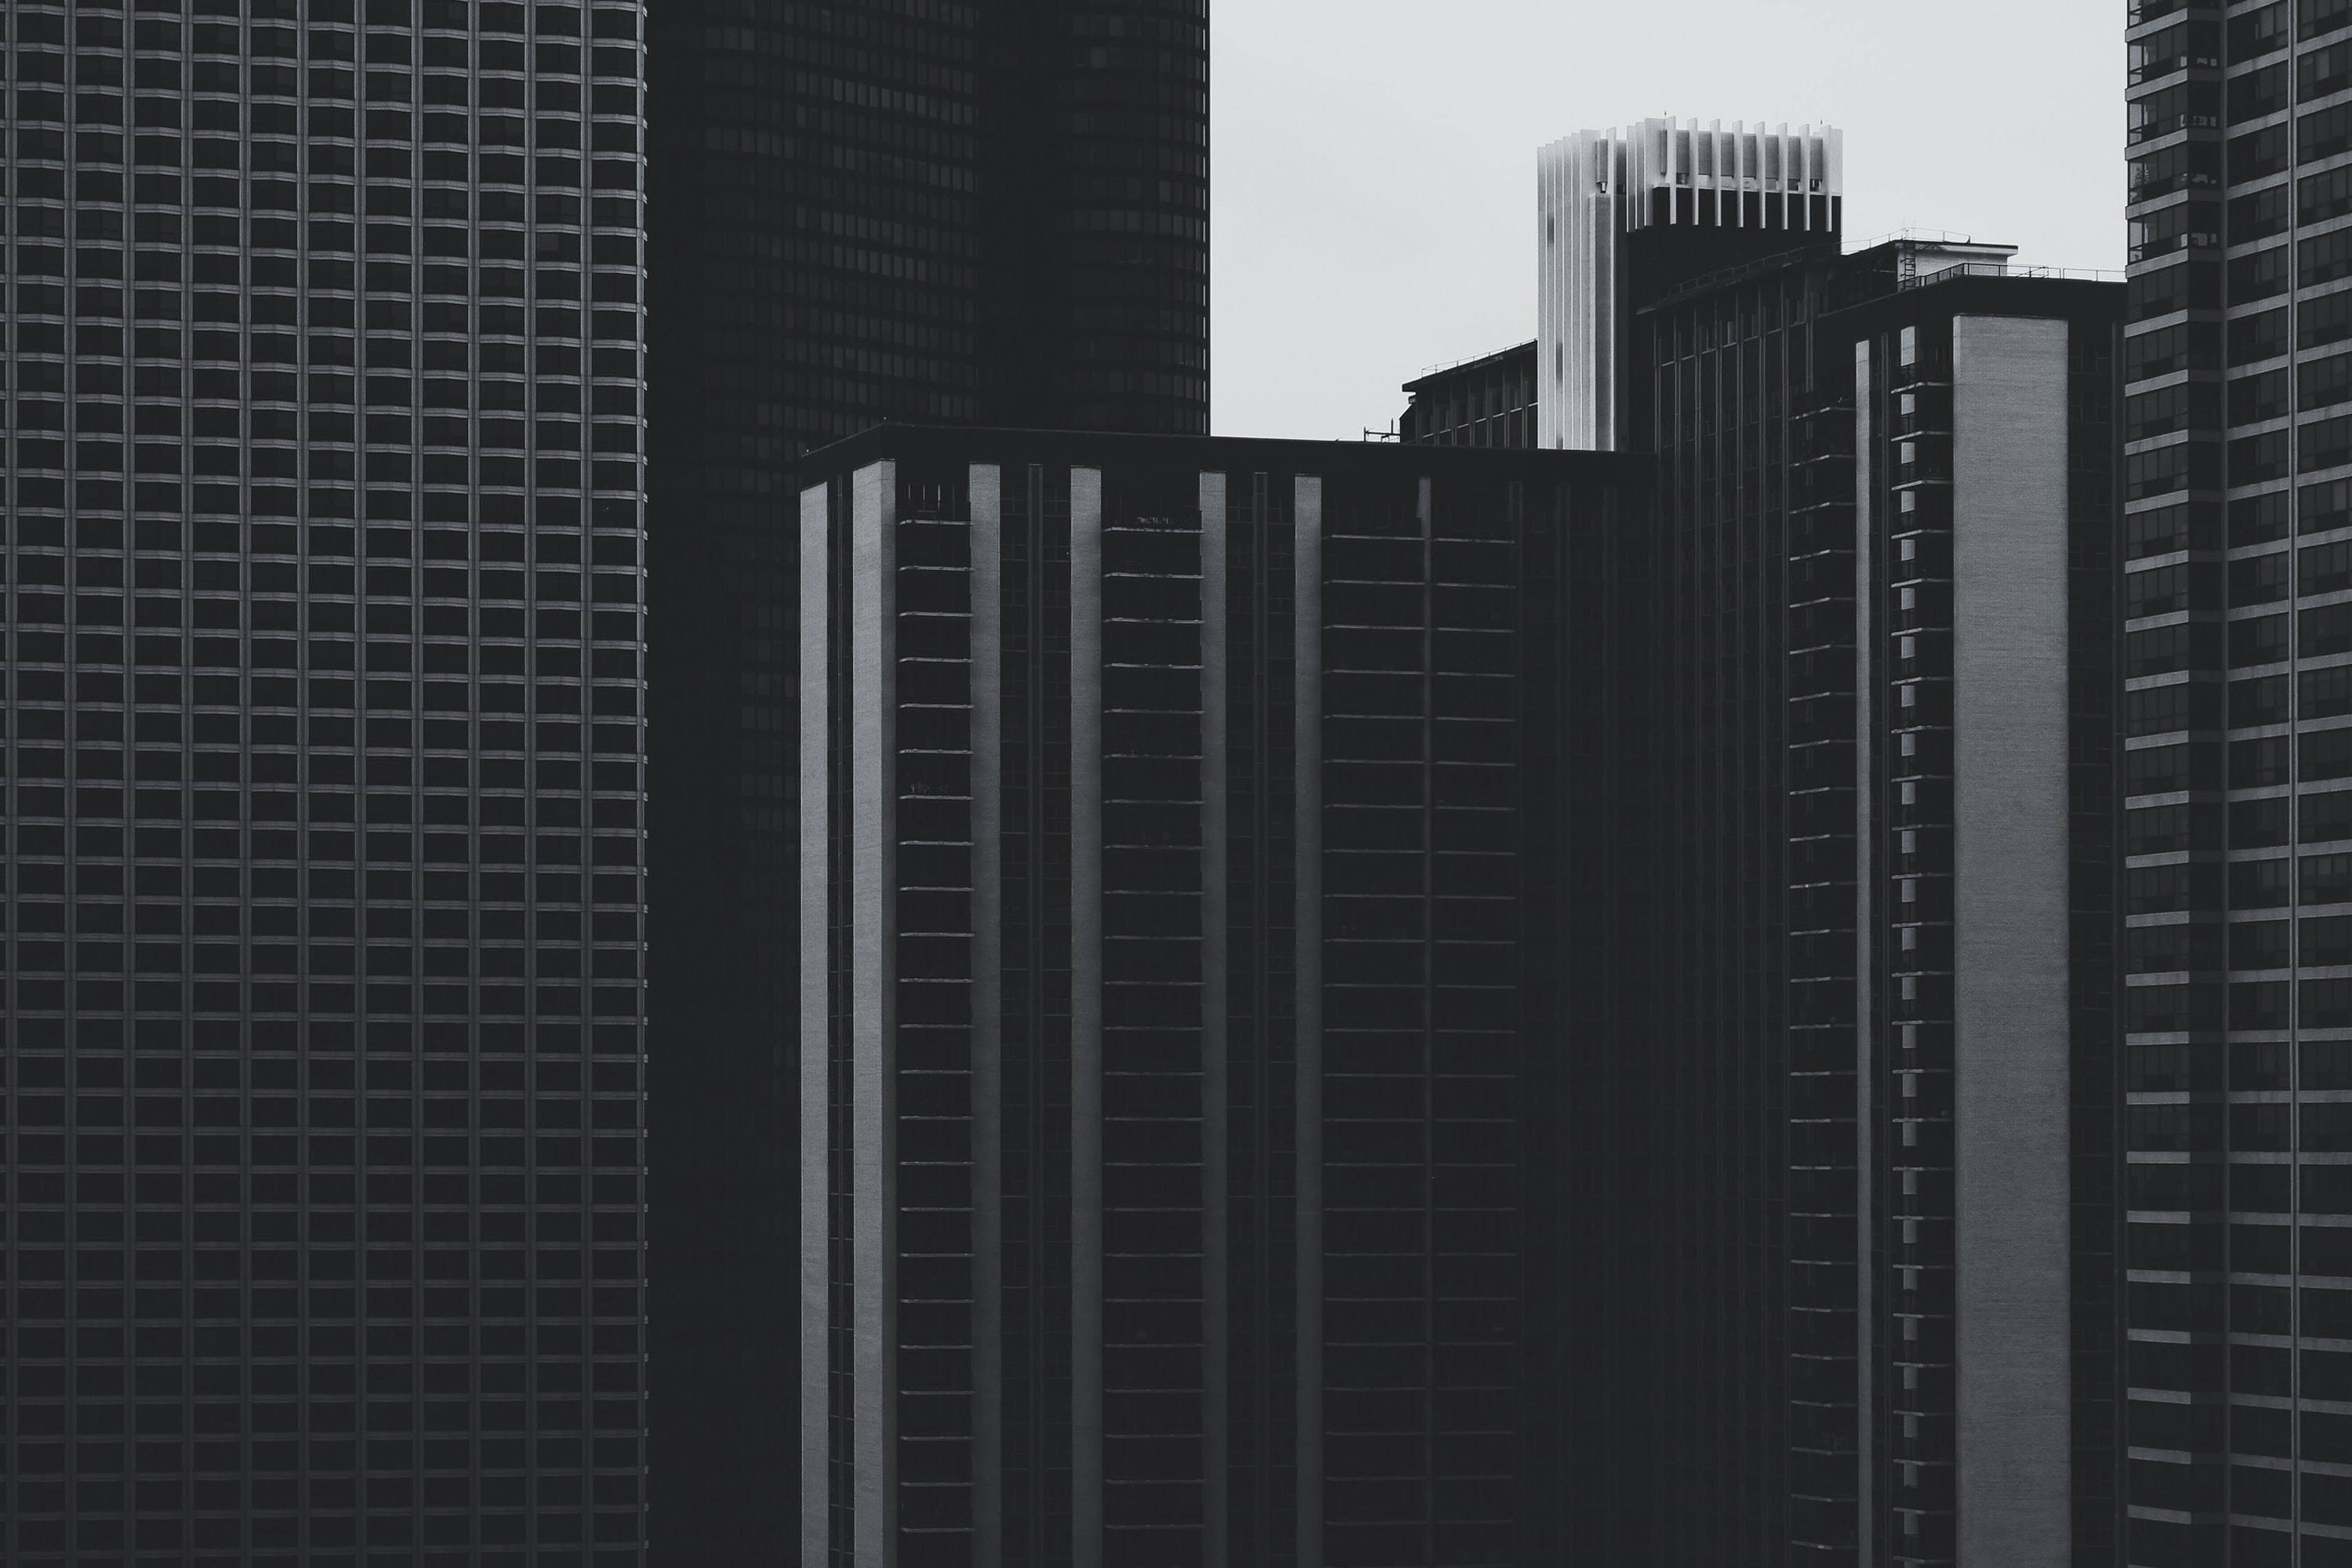 A gloomy shot of office buildings in Chicago